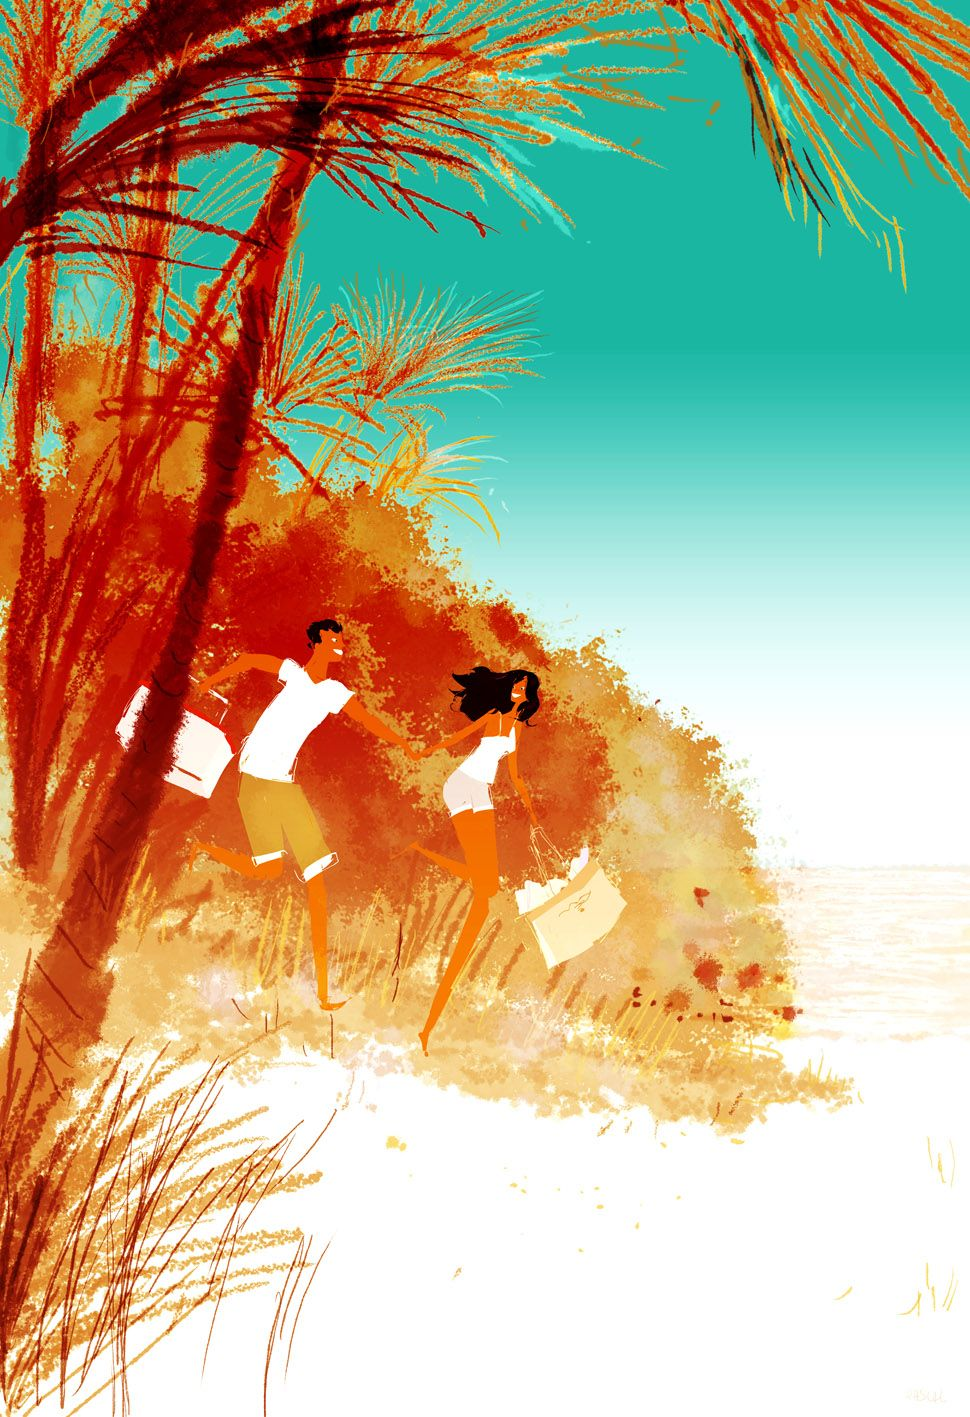 But it's only Thursday! #pascalcampionart. _Even better.. we'll have the whole place to ourselves!